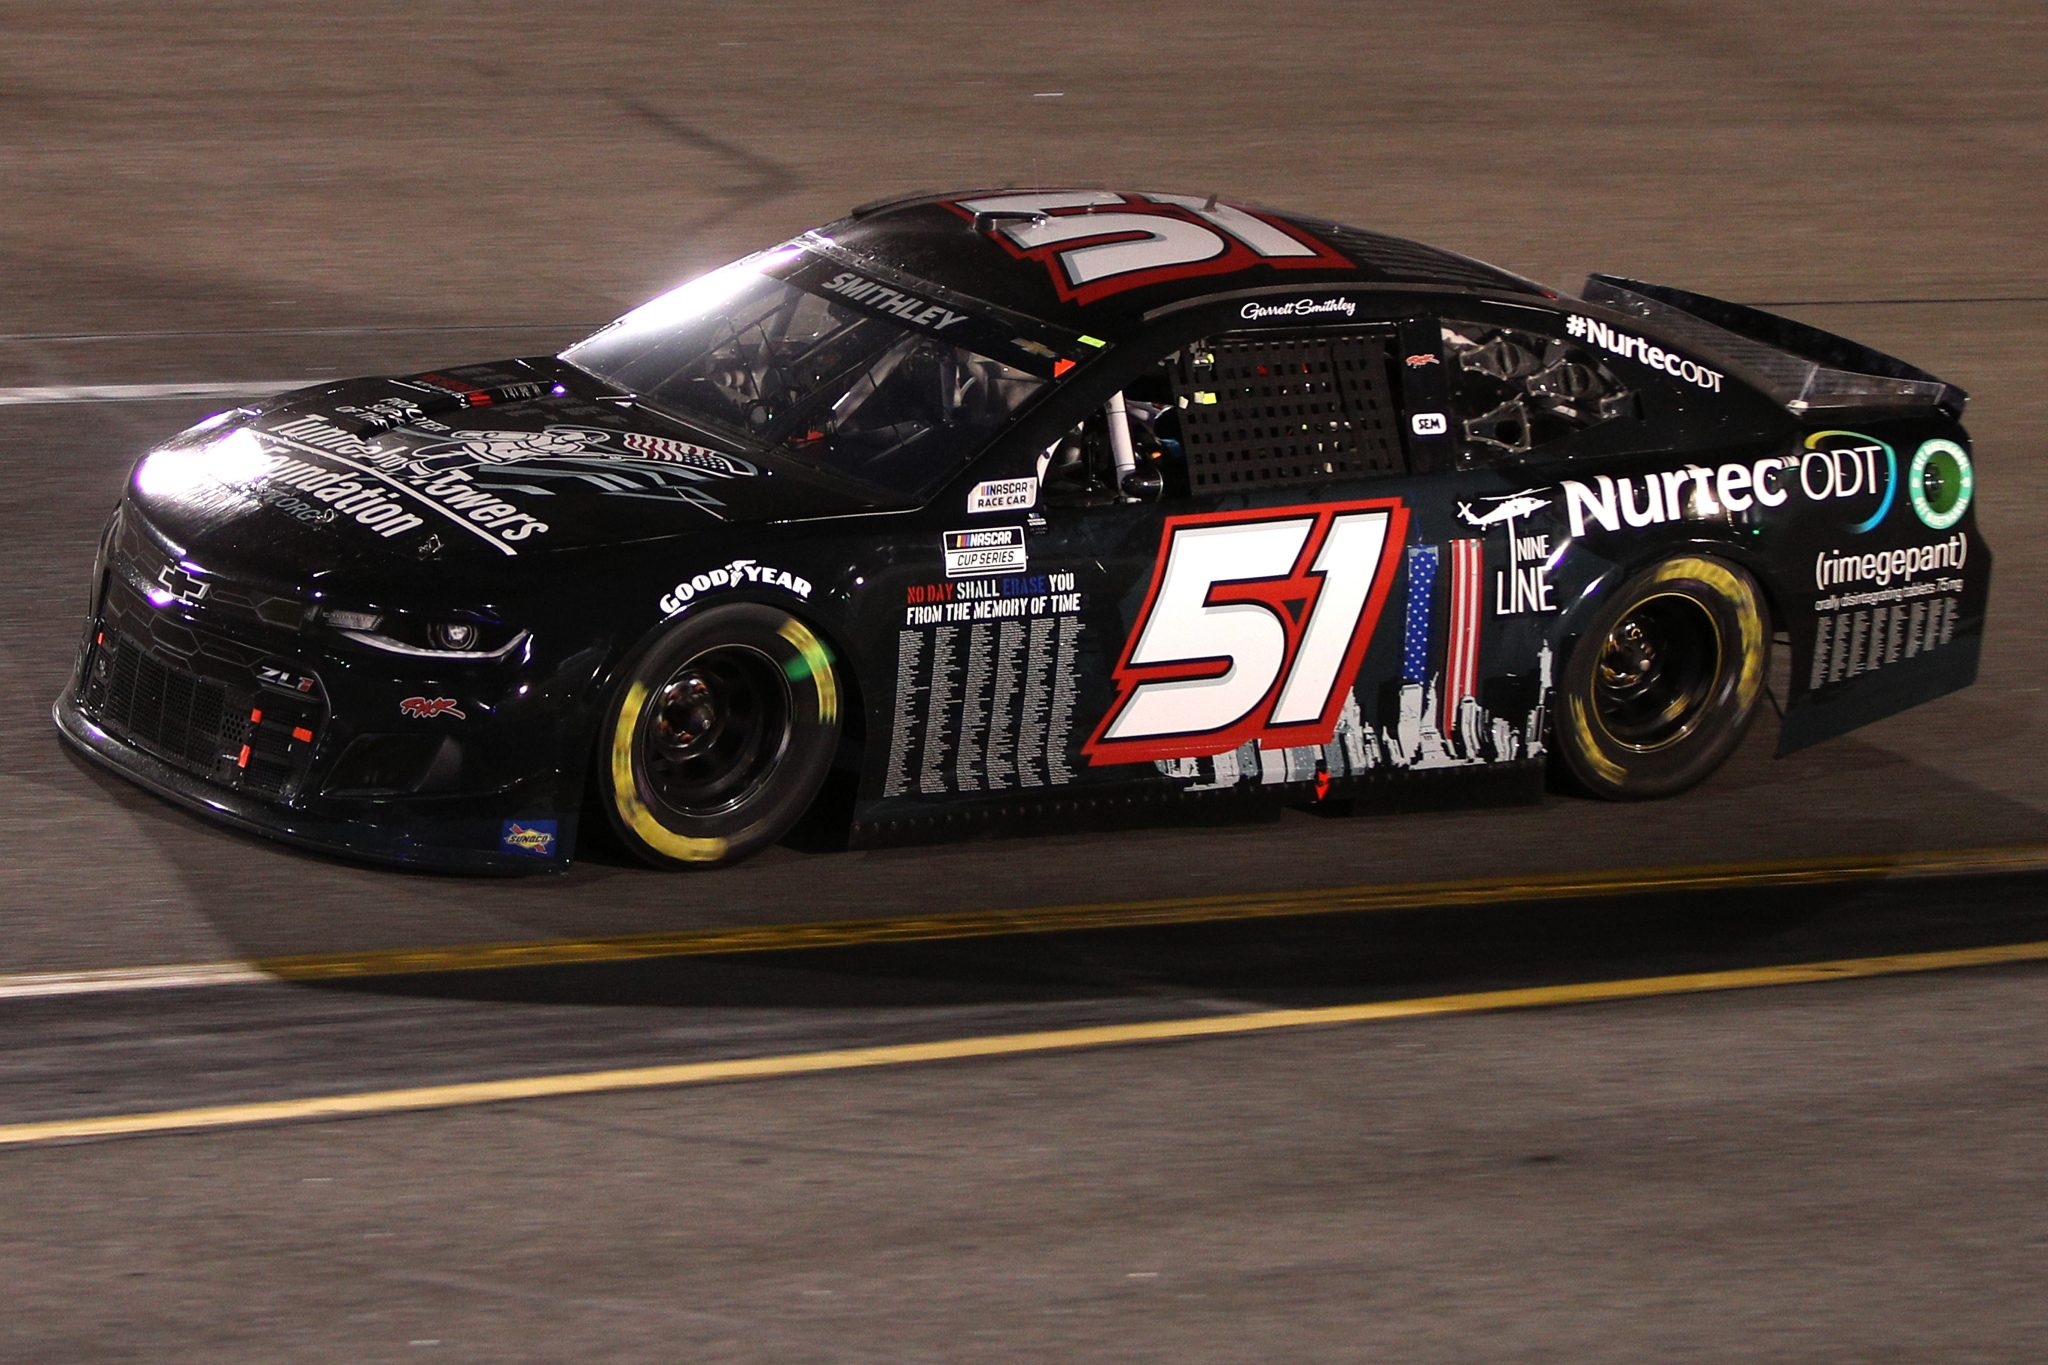 RICHMOND, VIRGINIA - SEPTEMBER 11: Garrett Smithley, driver of the #51 9/11 Scheme Chevrolet, drives during the NASCAR Cup Series Federated Auto Parts 400 Salute to First Responders at Richmond Raceway on September 11, 2021 in Richmond, Virginia. (Photo by Sean Gardner/Getty Images) | Getty Images